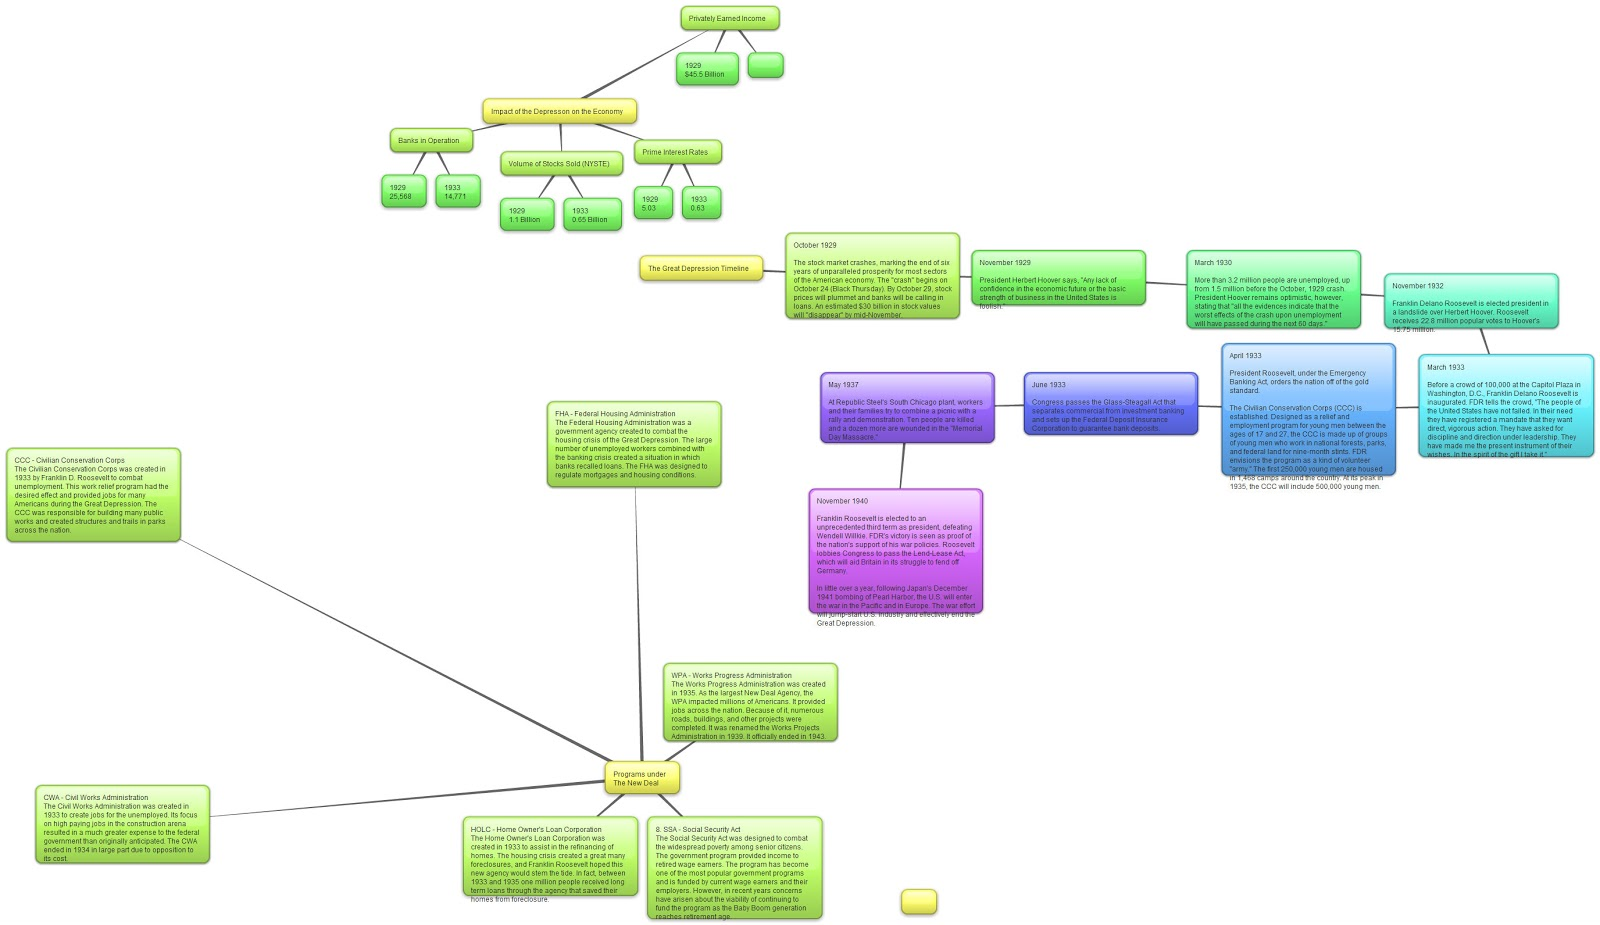 Co Teaching with Technology: The Great Depression concept map